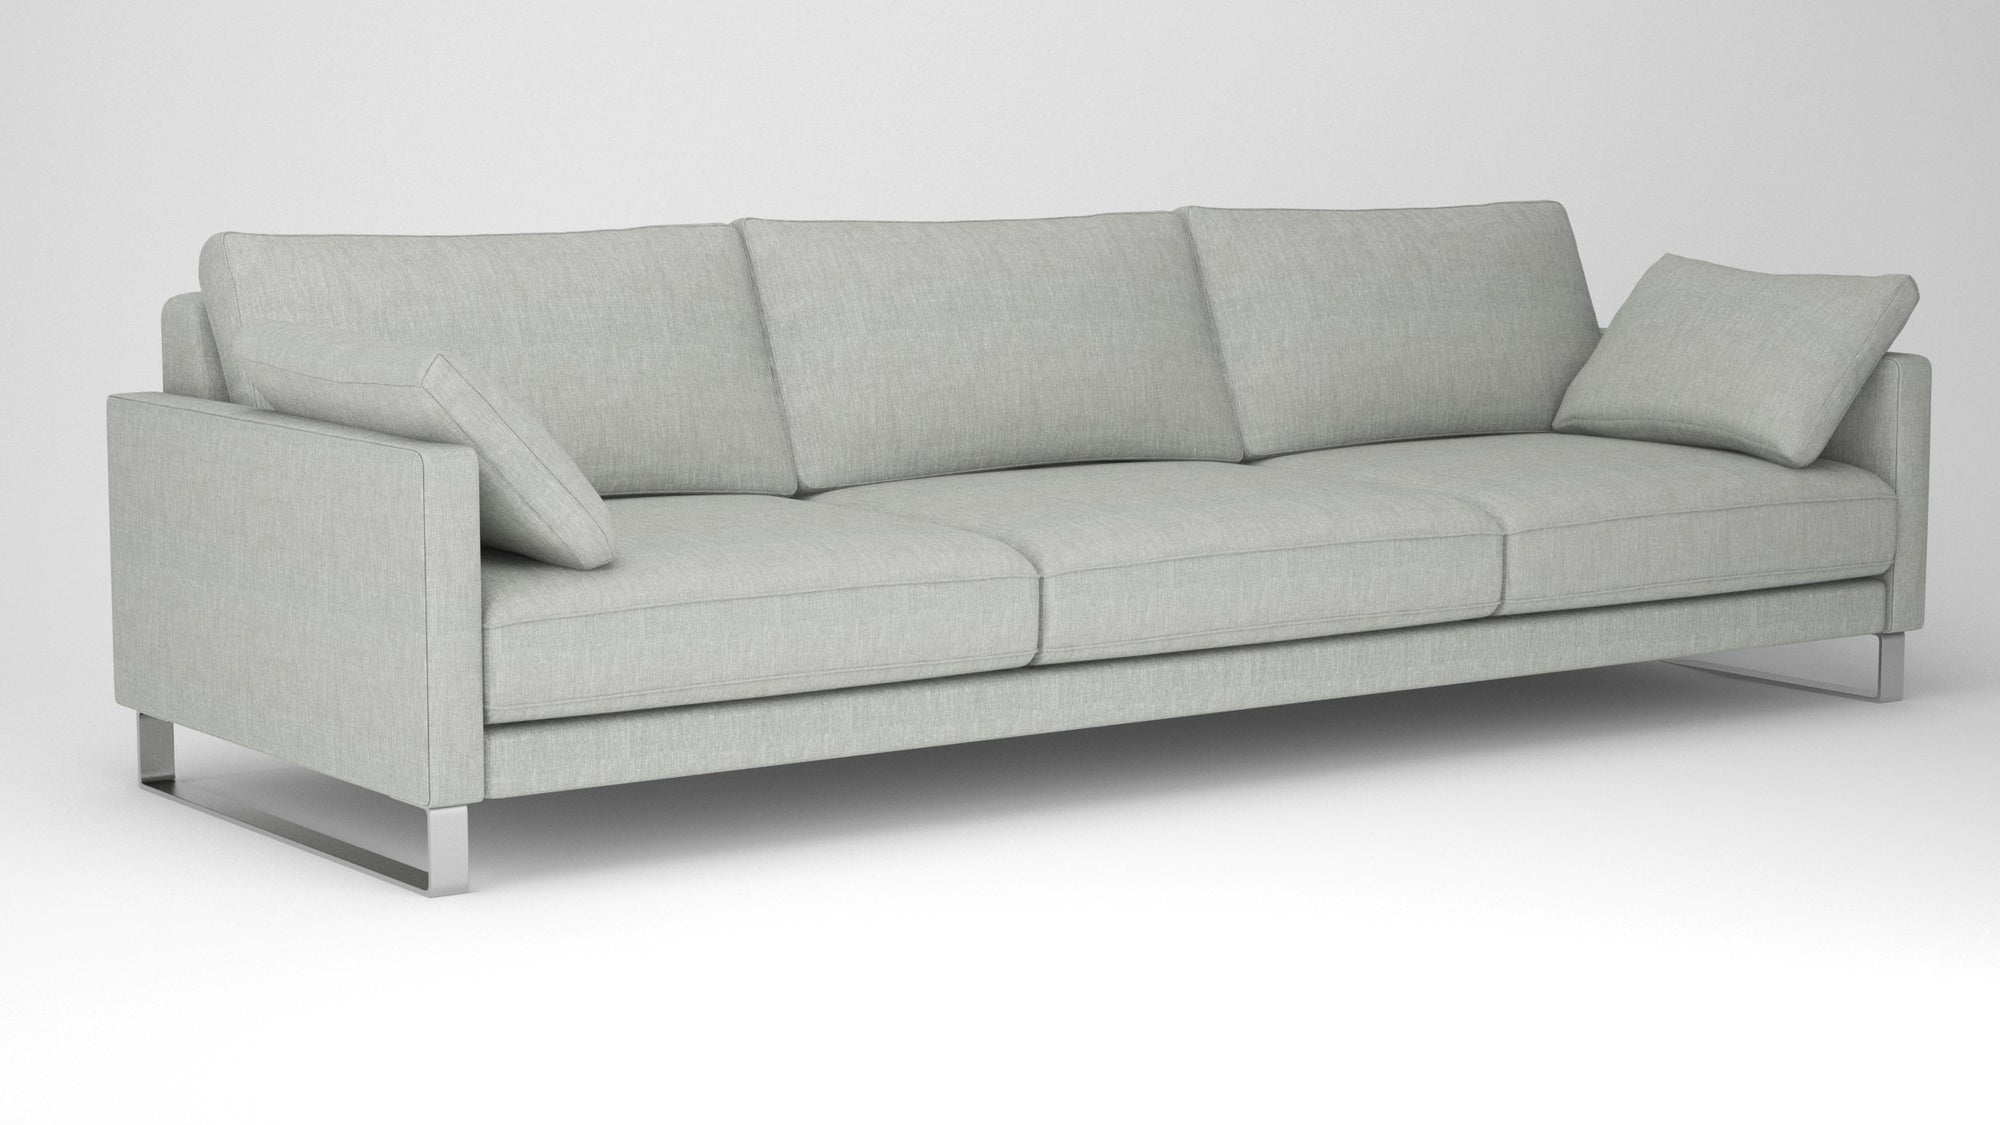 Gus 3-Seater Sofa